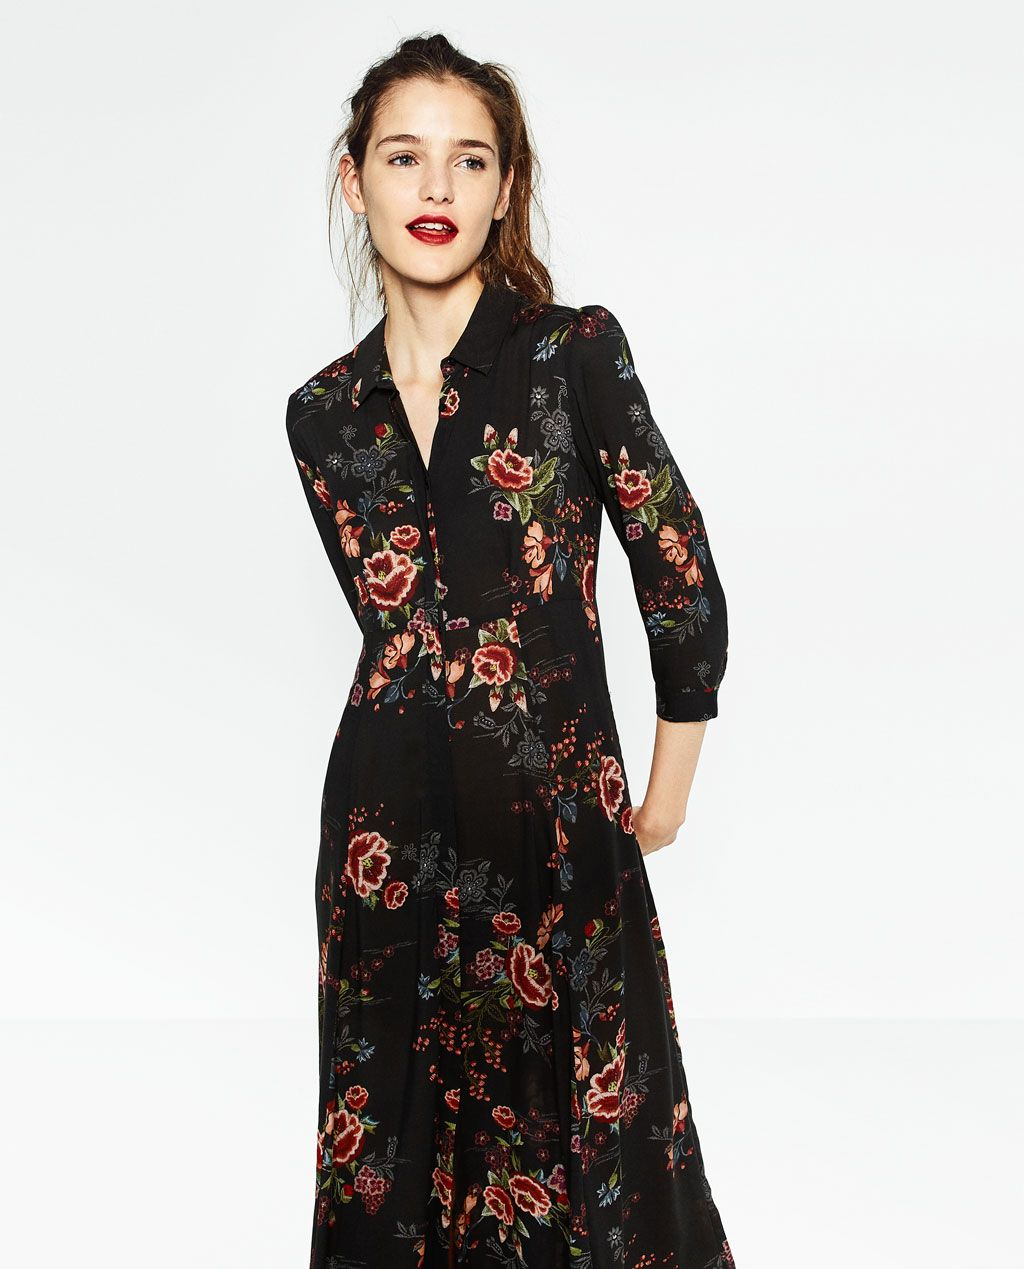 Robe Longue Imprimee Robes Femme Zara France Dressing